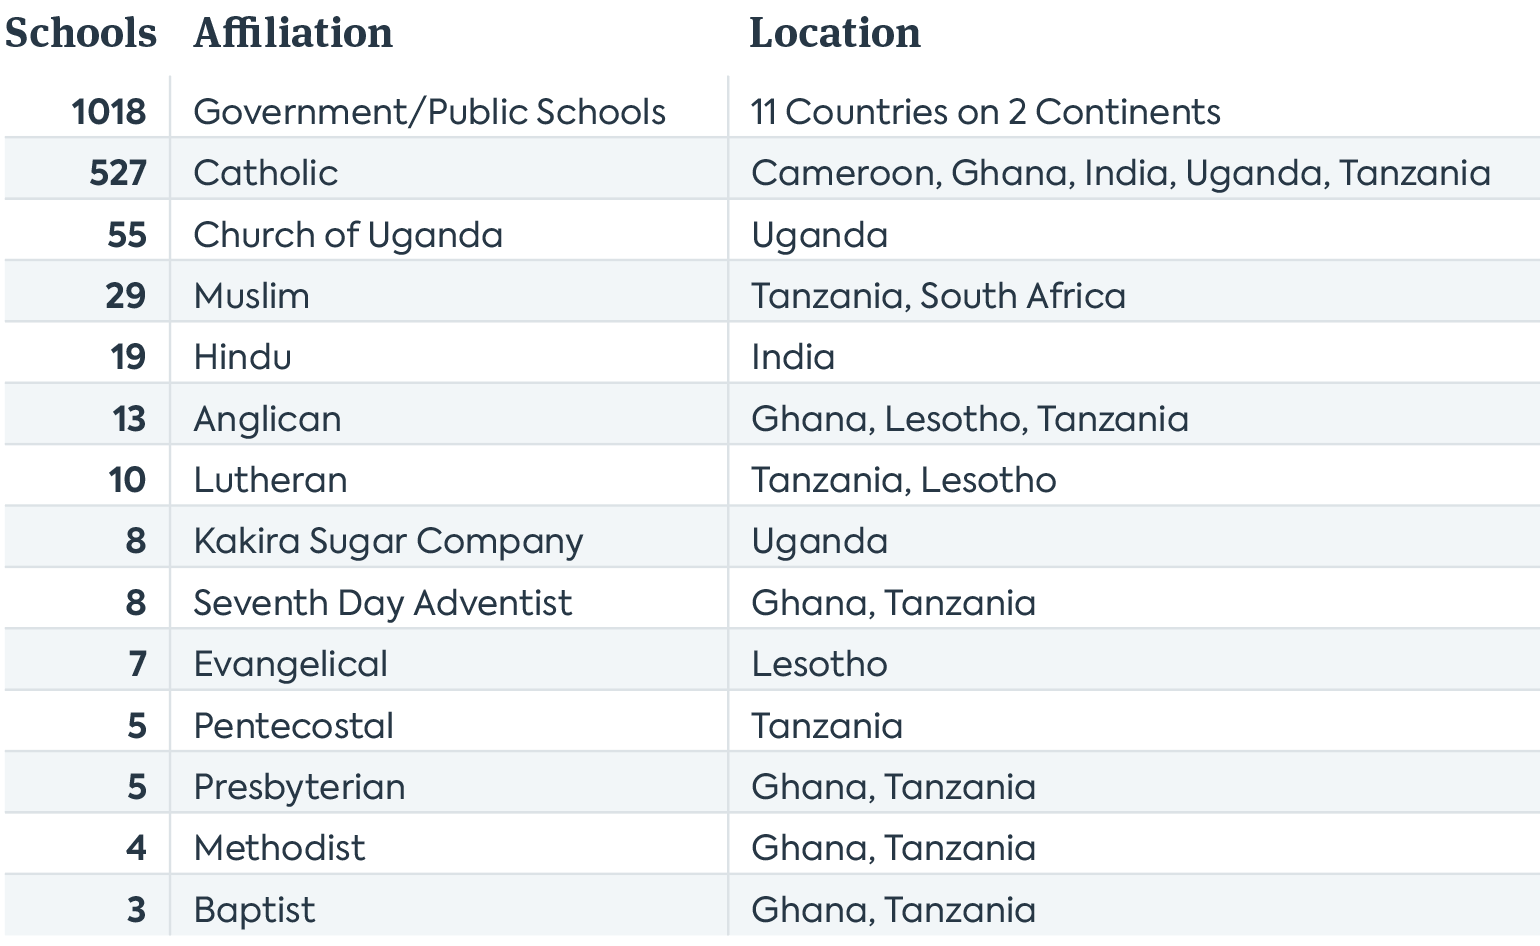 A table illustrating that OE's Primary School Program supports diverse schools around the world.